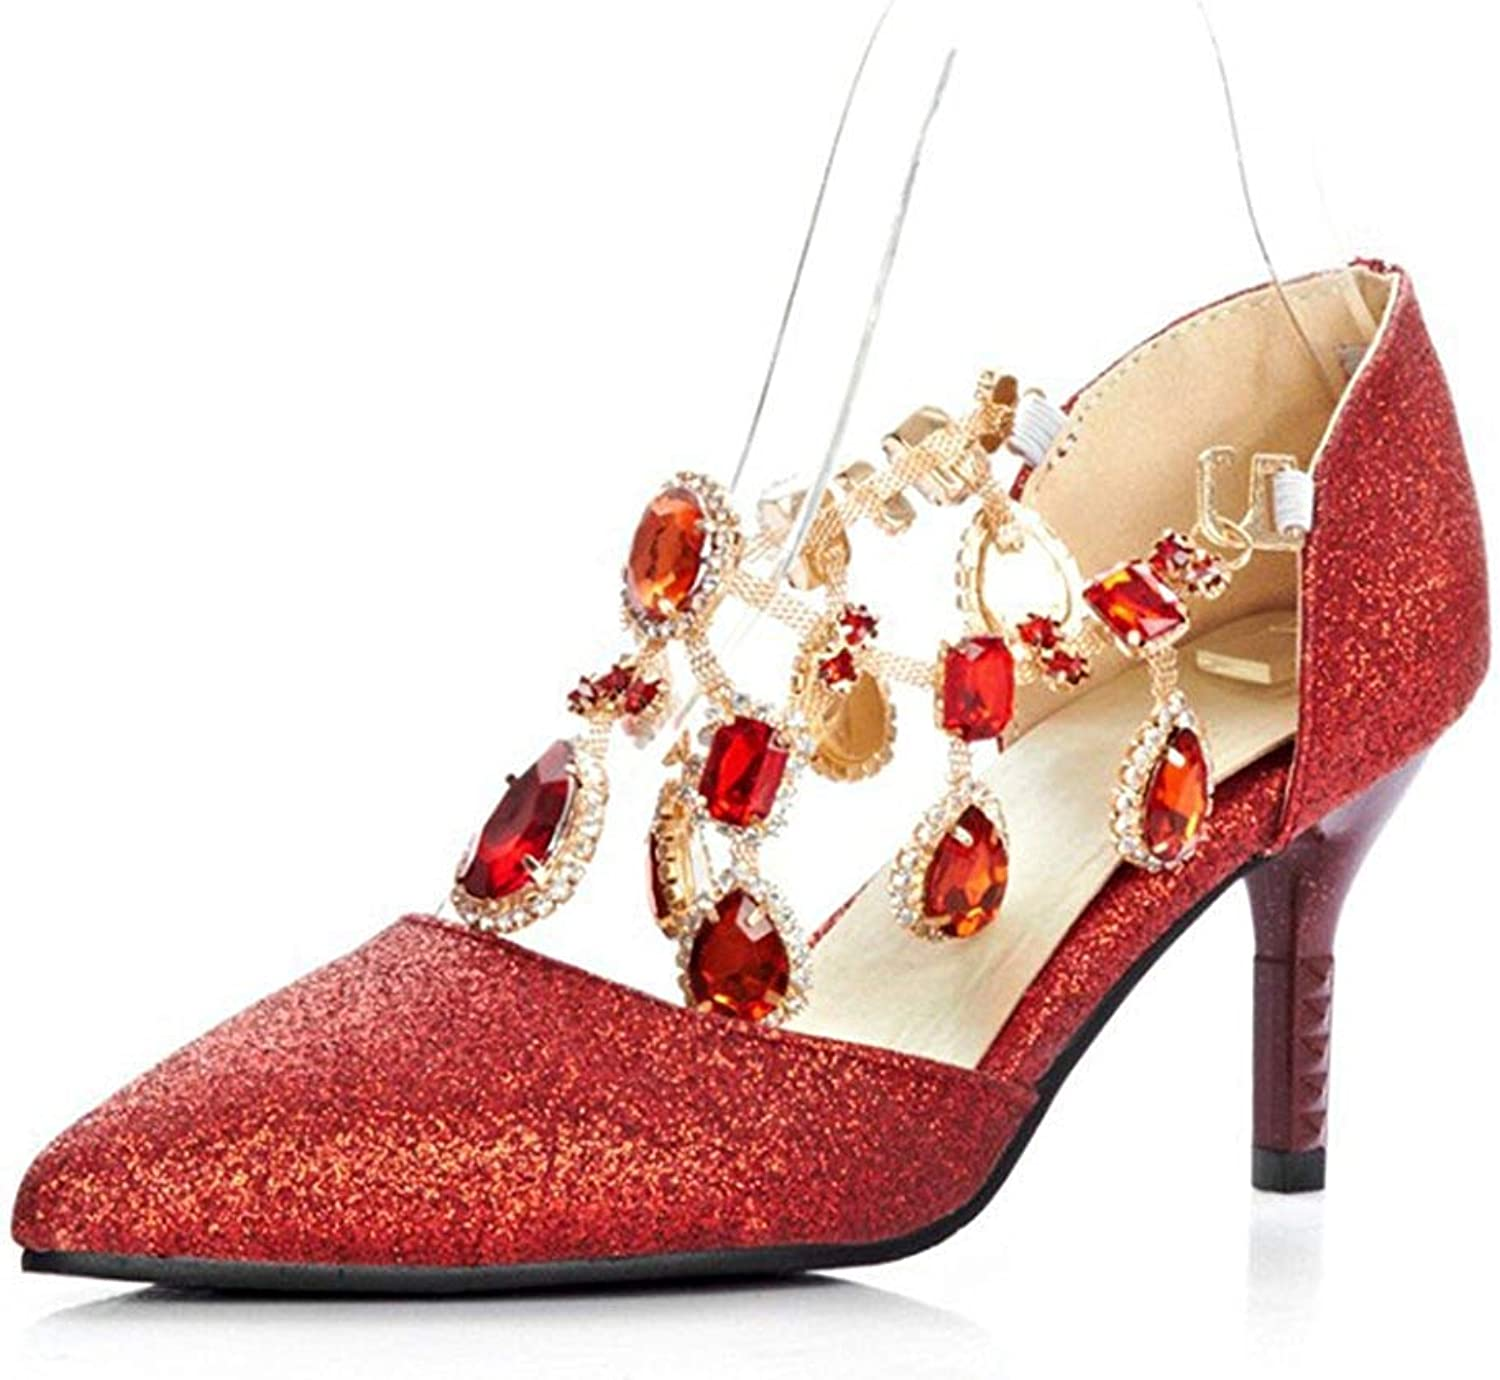 Unm Women's Sexy Sequins Rhinestones Pointed Toe Ankle Wrap Buckle Dress Kitten Heeled Pumps Party Bridal Stiletto shoes